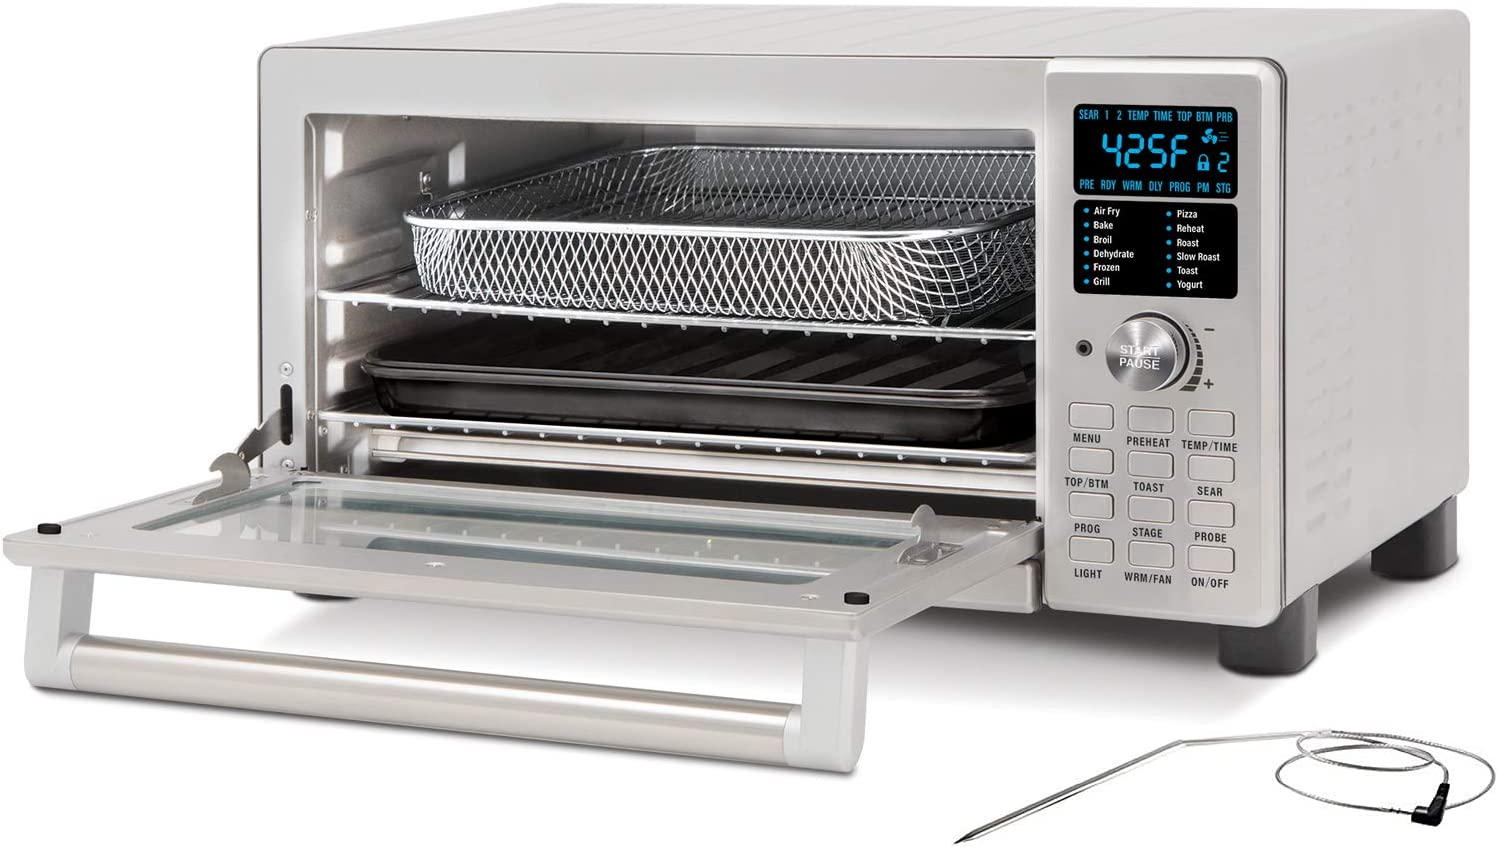 NUWAVE BRAVO XL 1800-Watt Convection Oven with Crisping and Flavor Infusion Technology (FIT) with Integrated Digital Temperature Probe for Perfect Results; 12 Programmed Presets; 3 Fan Speeds; 5-Quartz Heating Elements; Precision Temperature Control from 100F to 450F in 5F increments; Cook up to a 10 LB. Chicken, 13 inch Pizza, or 9 Slices of Toast; Air